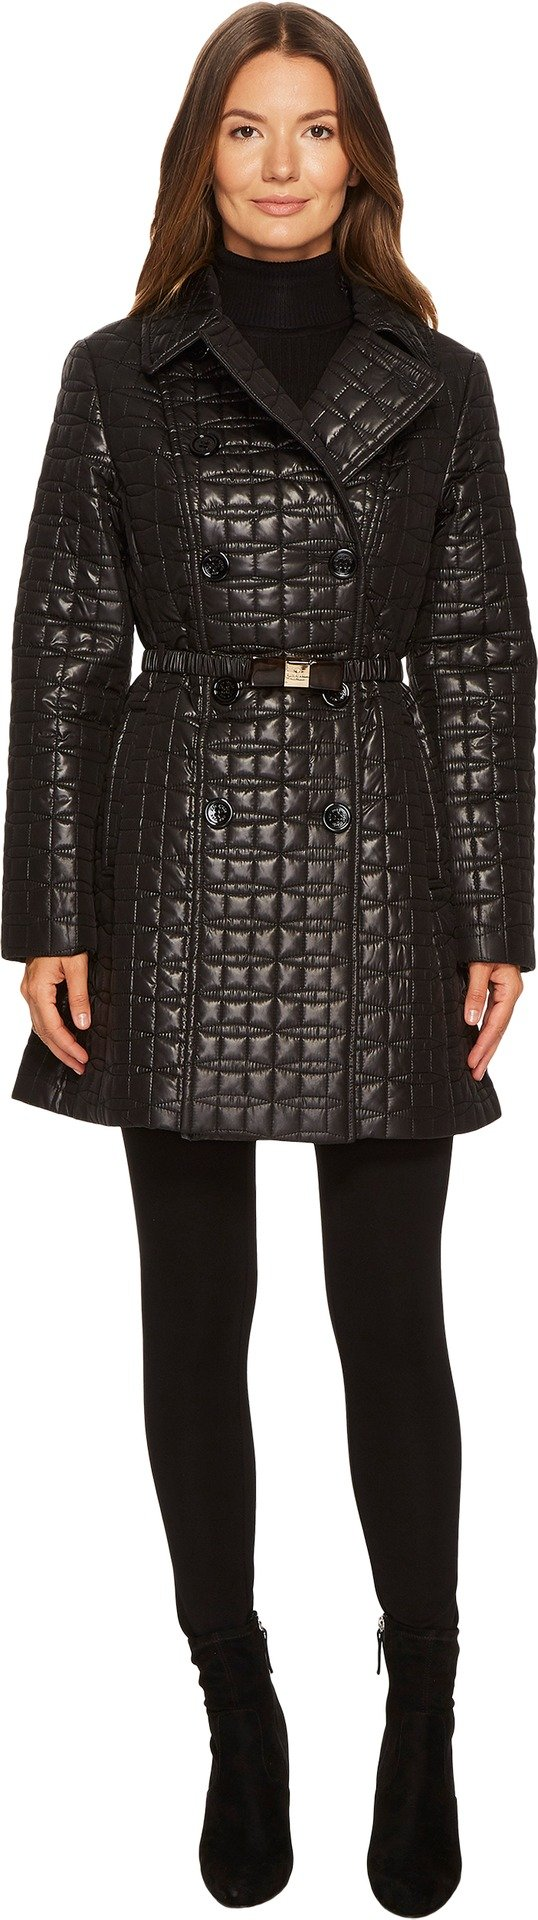 Kate Spade New York Womens Quilted Tortoise Bow Buckle Double-Breasted Jacket Black SM One Size